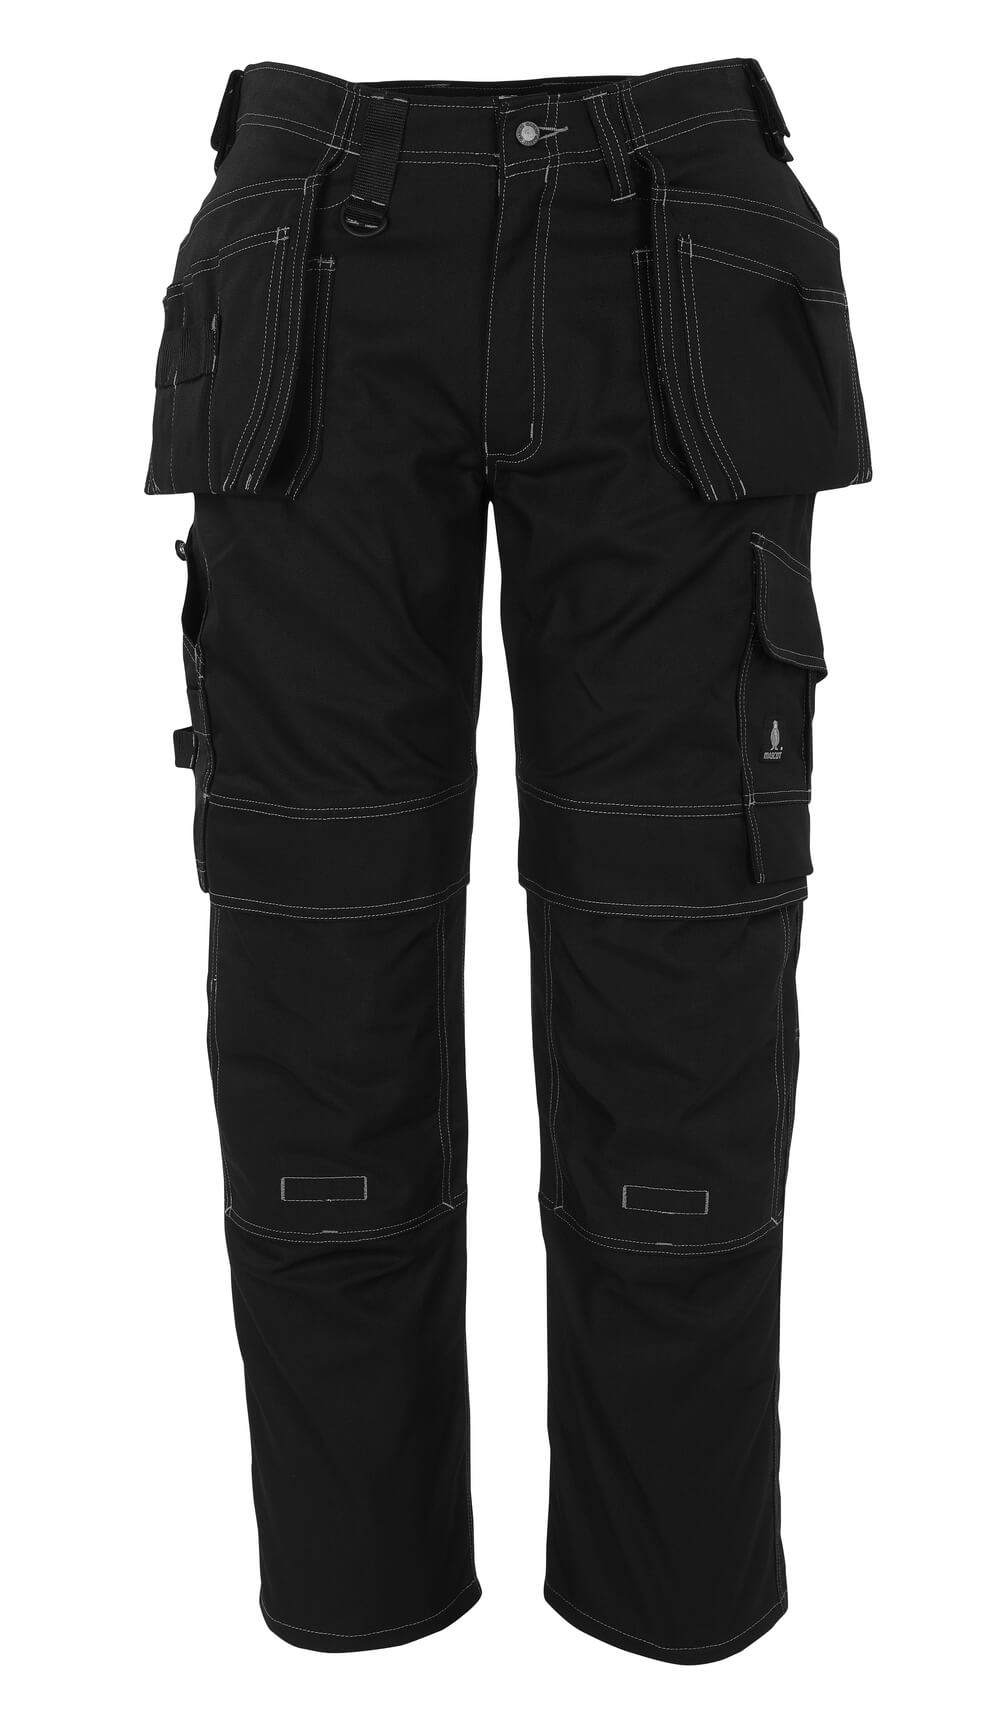 08131-010-09 Pants with kneepad pockets and holster pockets - black